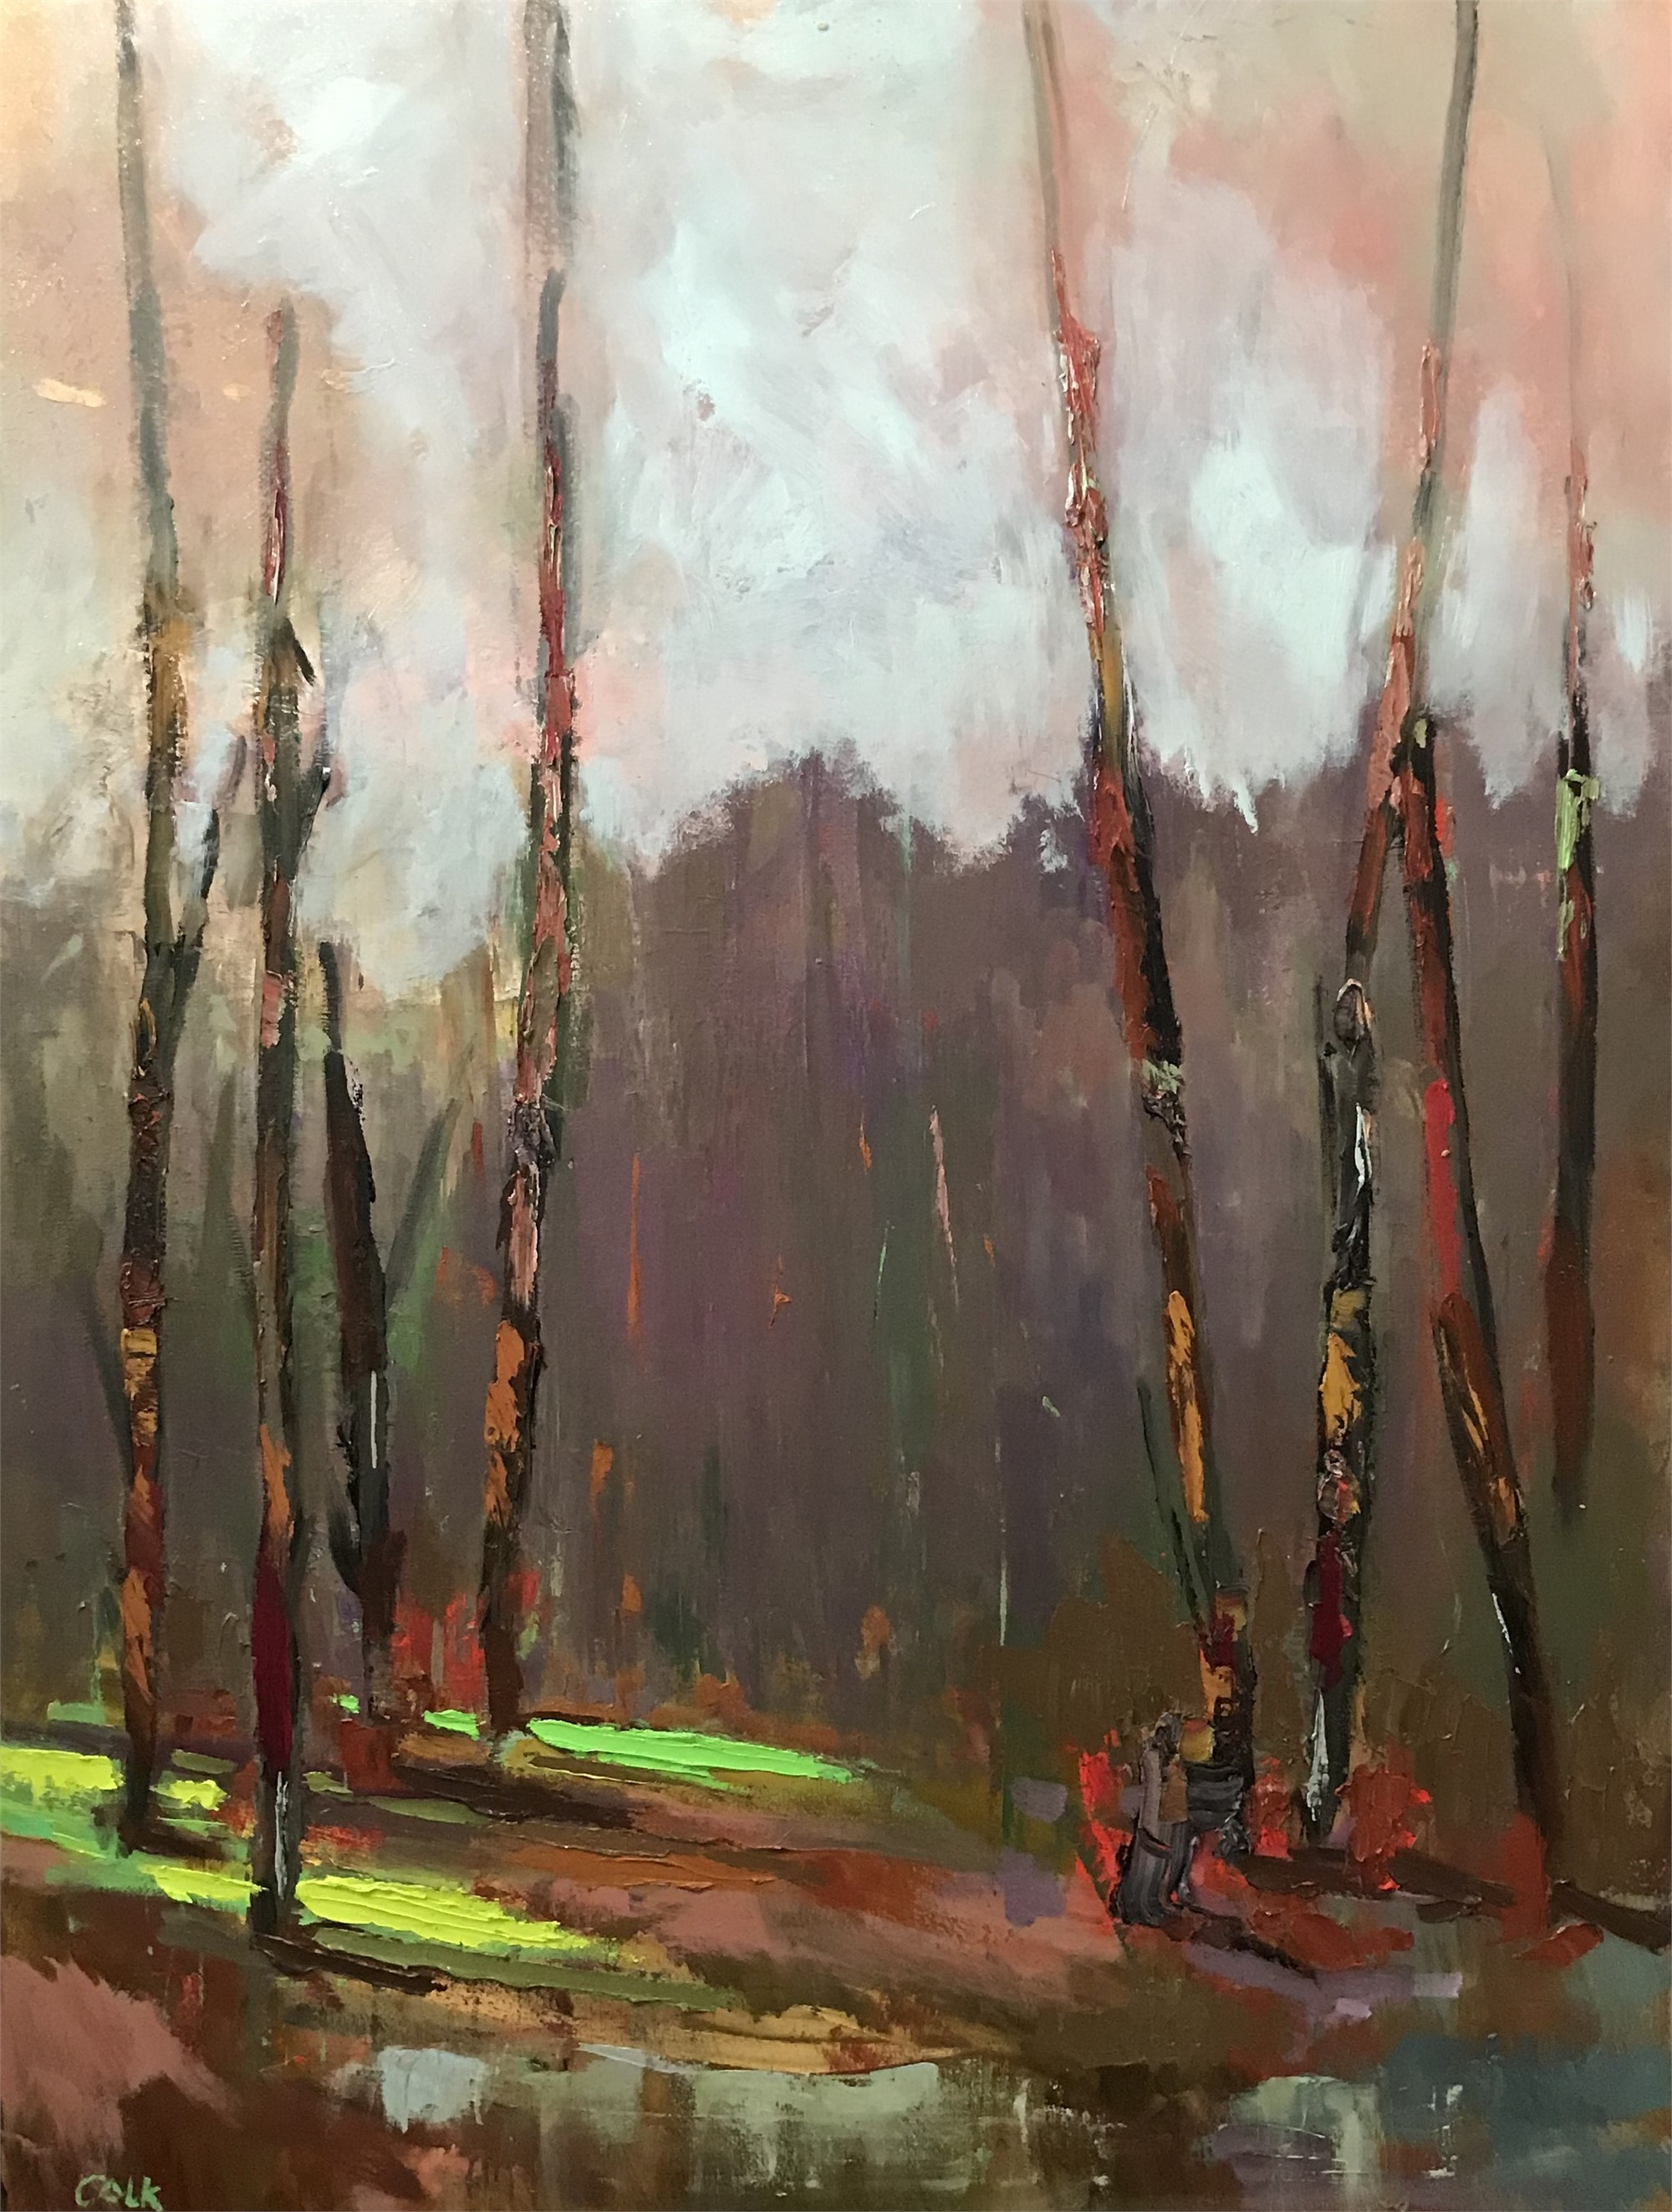 River Series I by James Calk